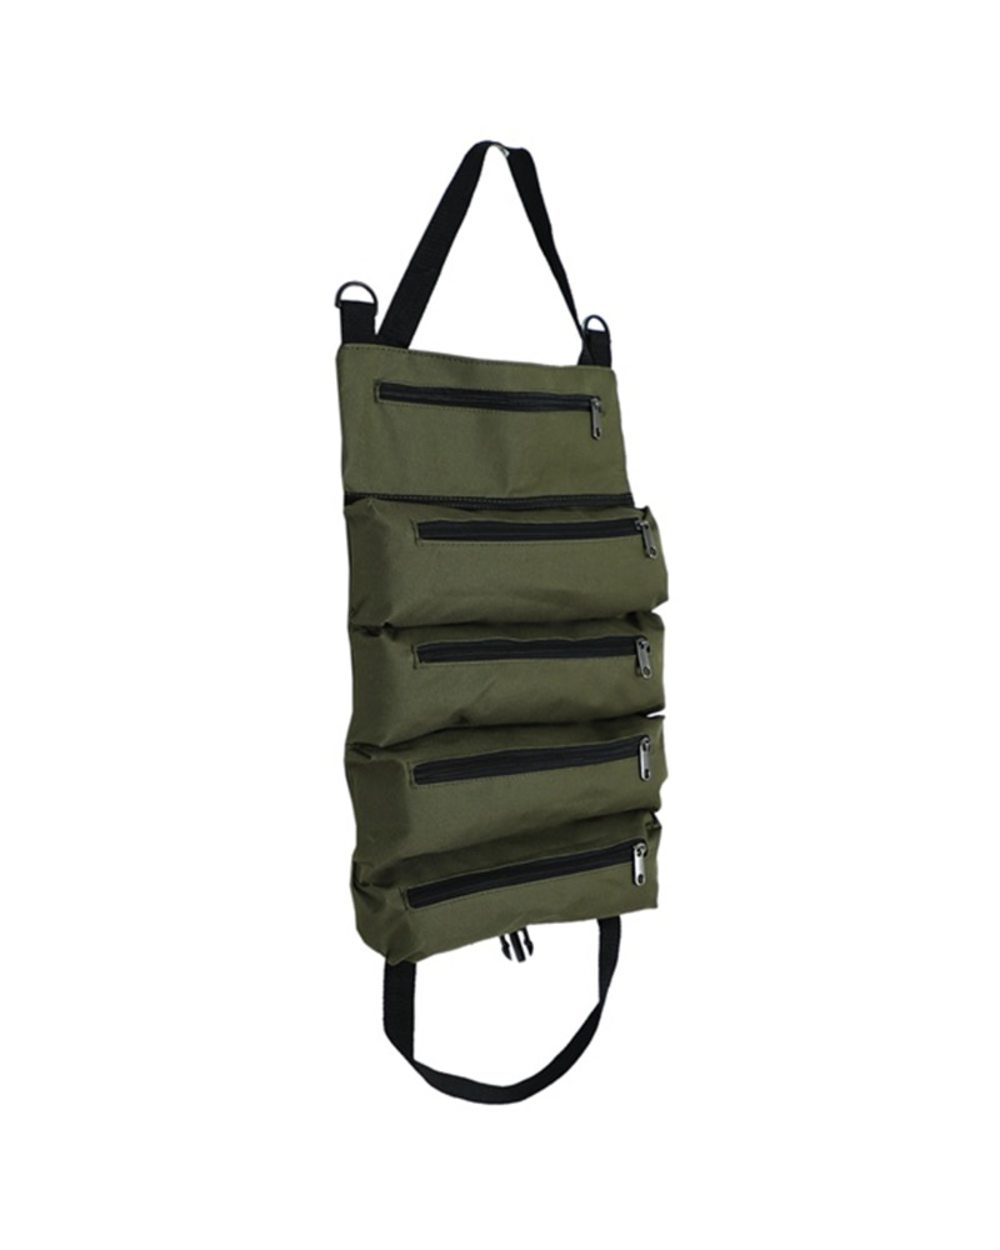 Multi-Purpose Zipper Carrier Roll Up Tote: Best Tool Pouch for Electricians  front-1